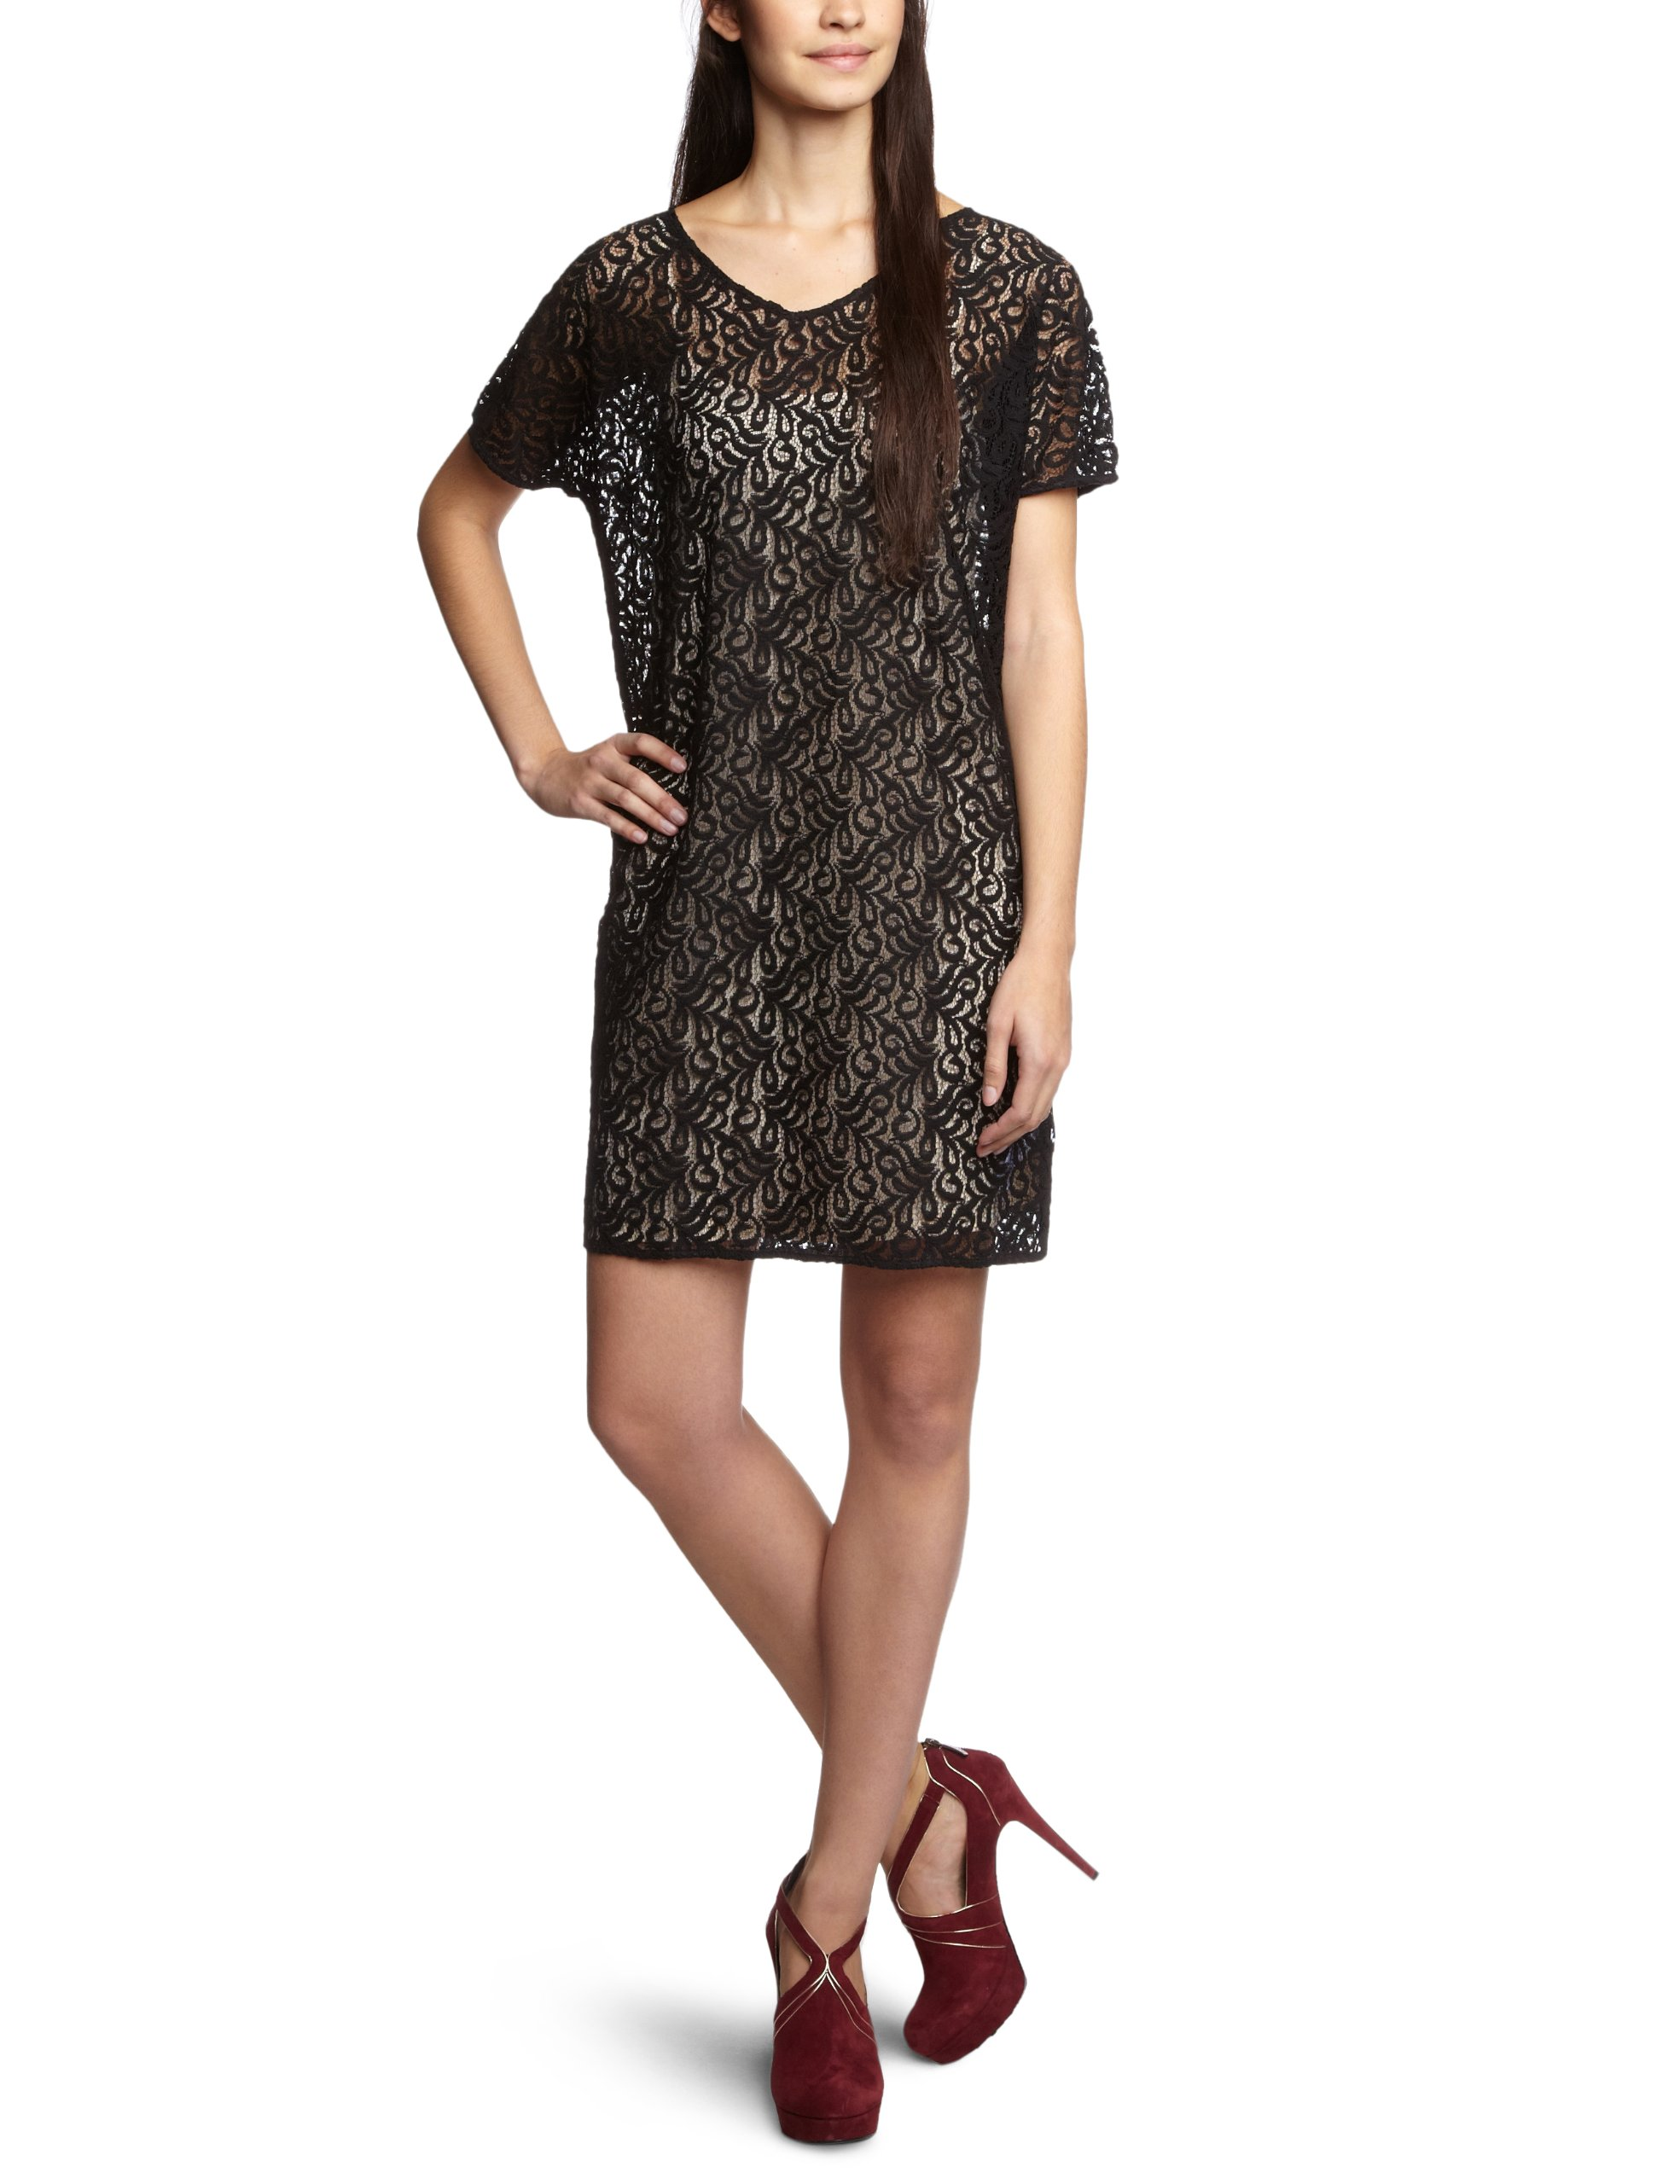 Noirblack Fabricant 050Fr38taille Manches Part Femme S TwoRobe 2 1 WD9EHI2Y